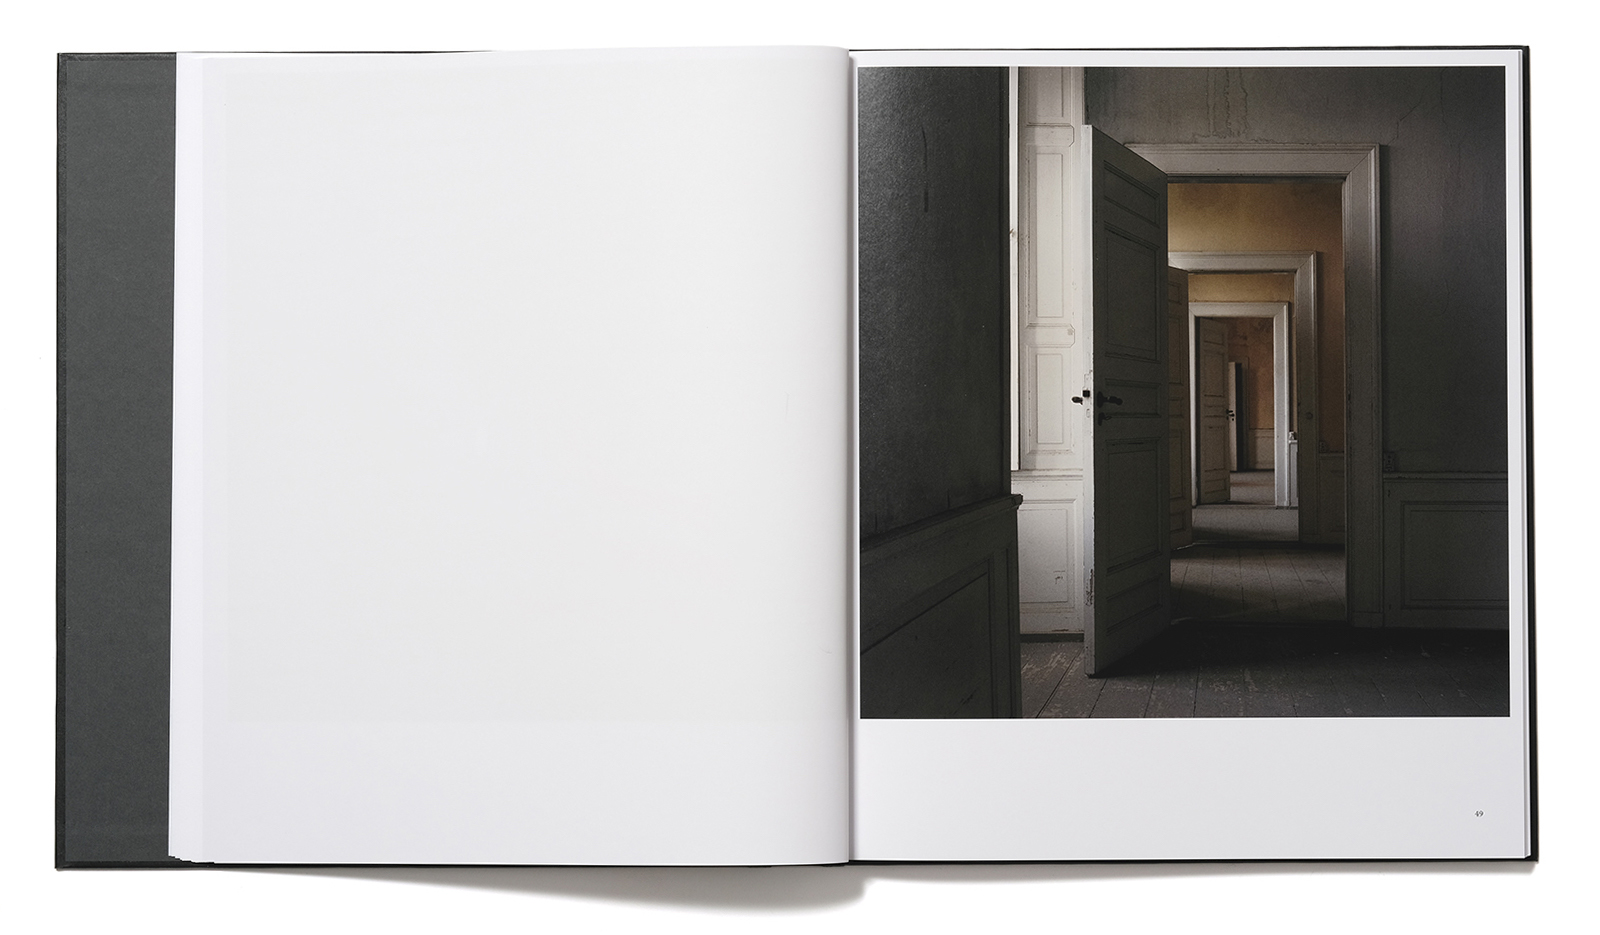 Spread from the book Stasis II by Trine Søndergaard with interior photograph